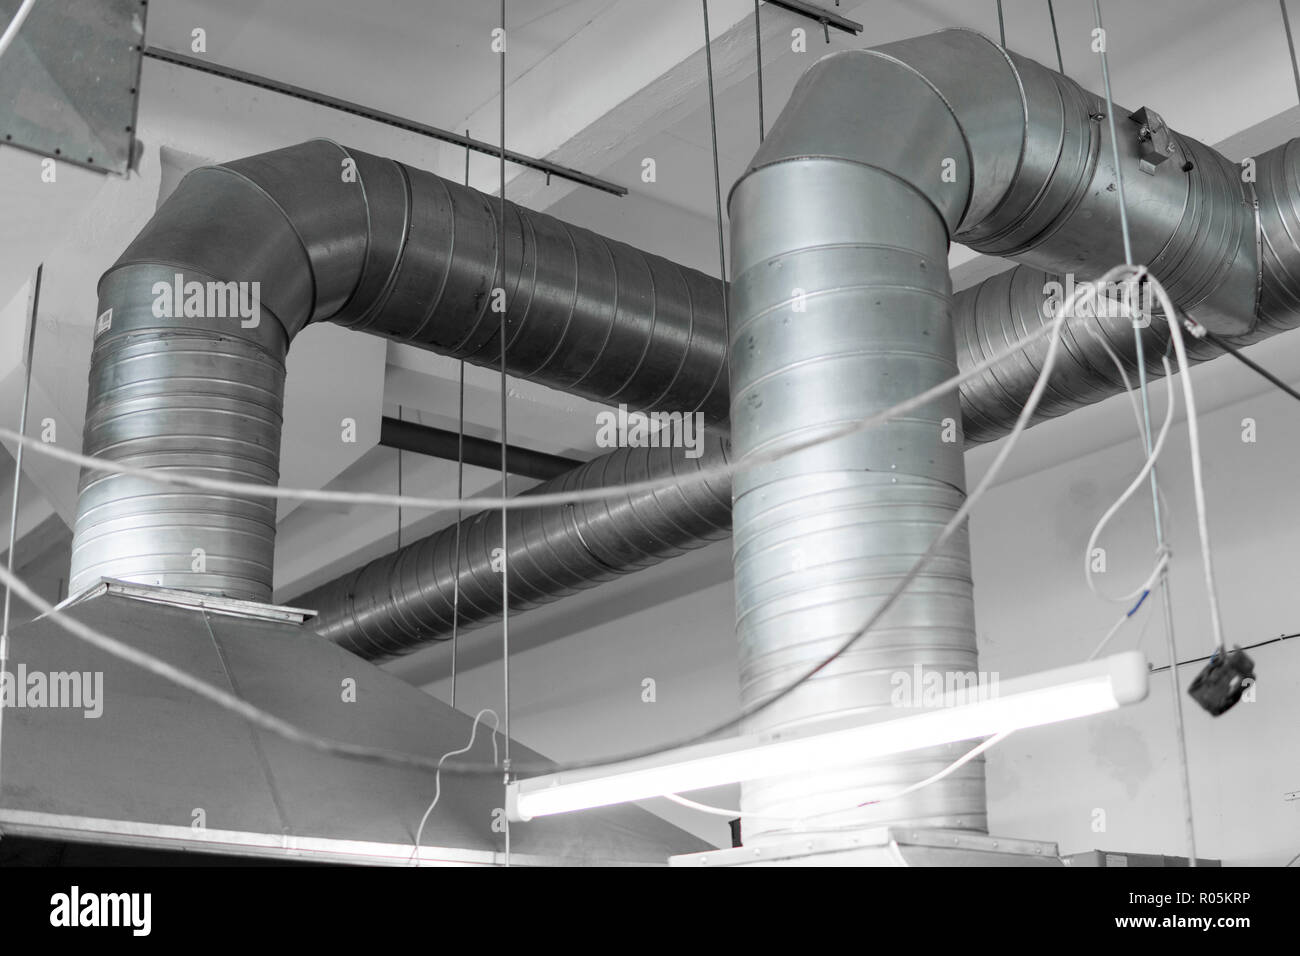 Ventilation Duct Roof Stock Photos Amp Ventilation Duct Roof